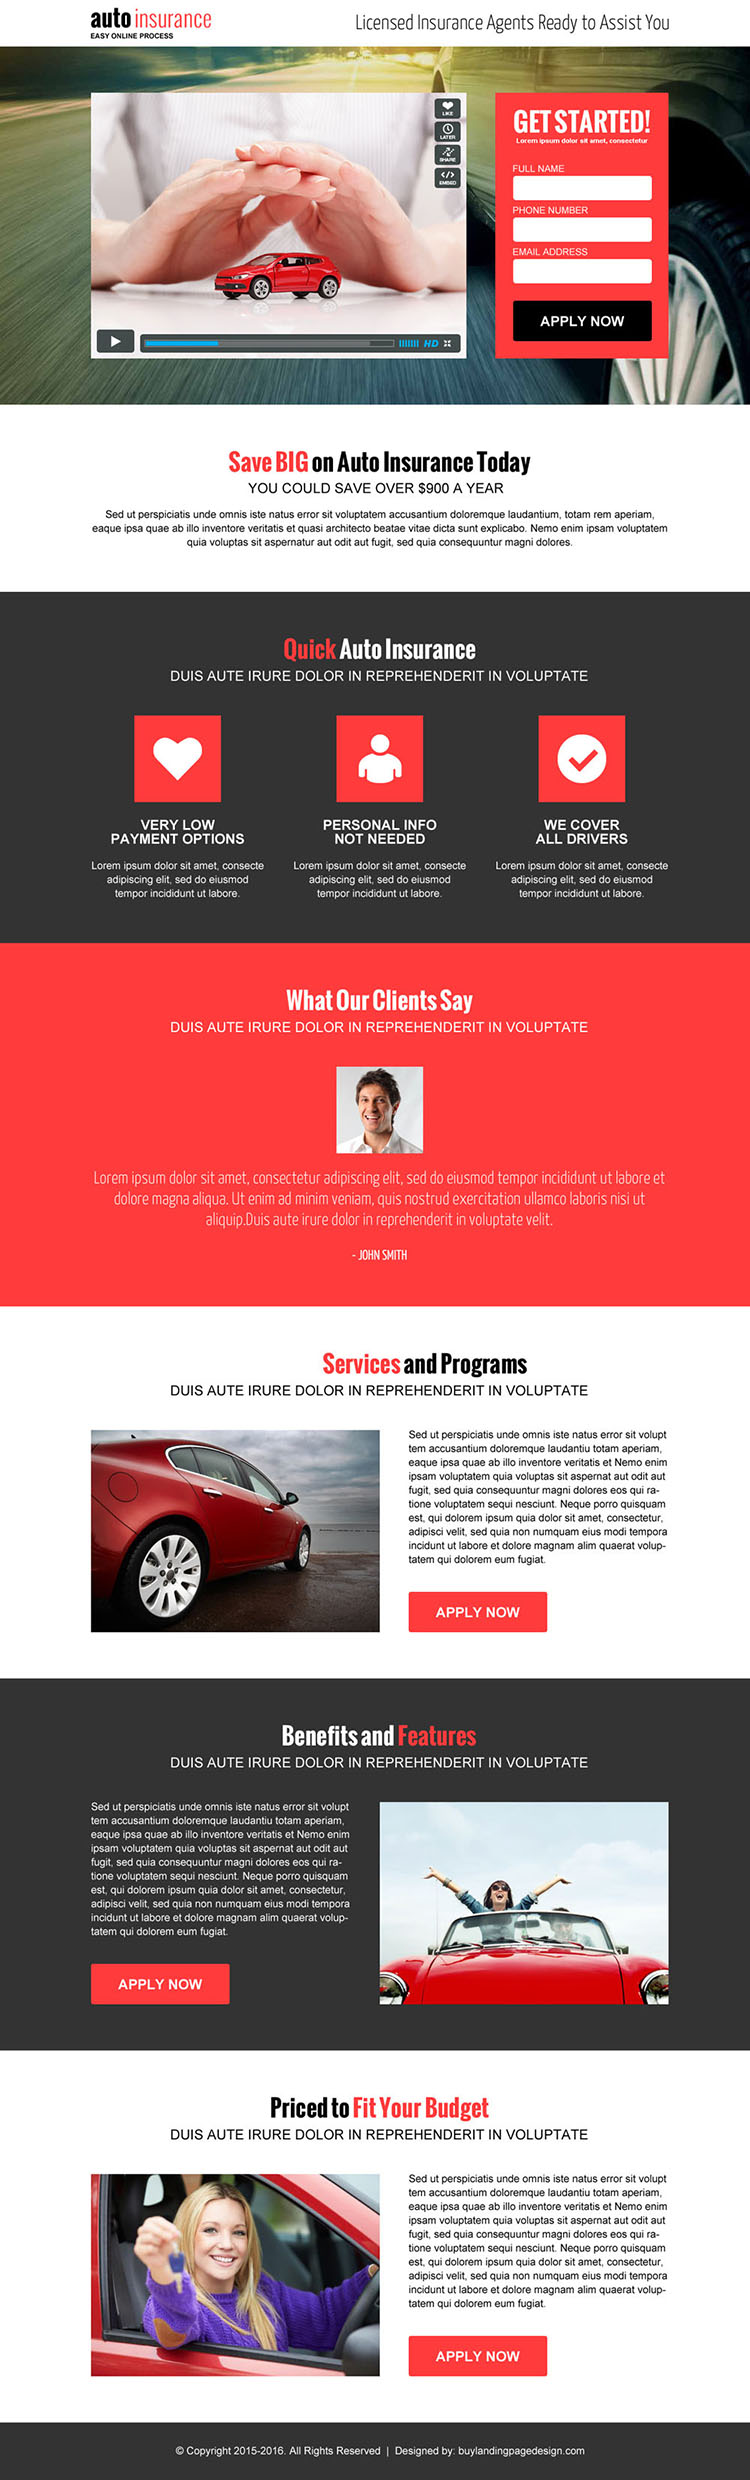 auto insurance lead capture converting video landing page design template